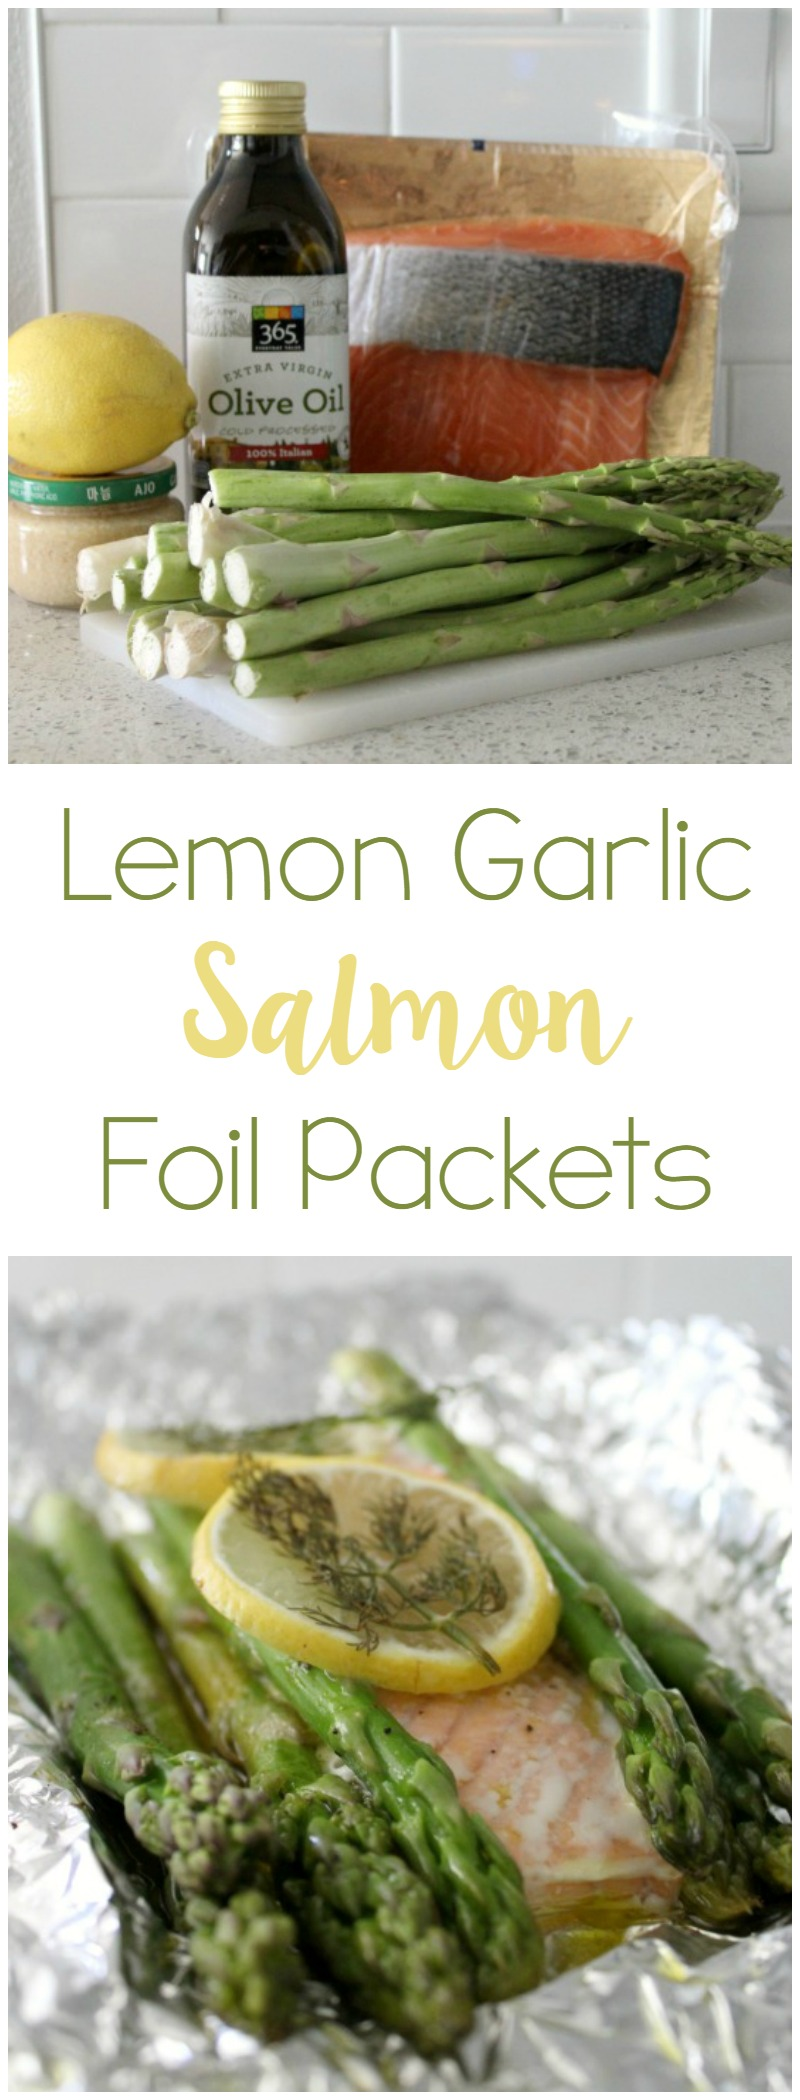 Lemon Garlic Salon Foil Packet // Life Anchored AD